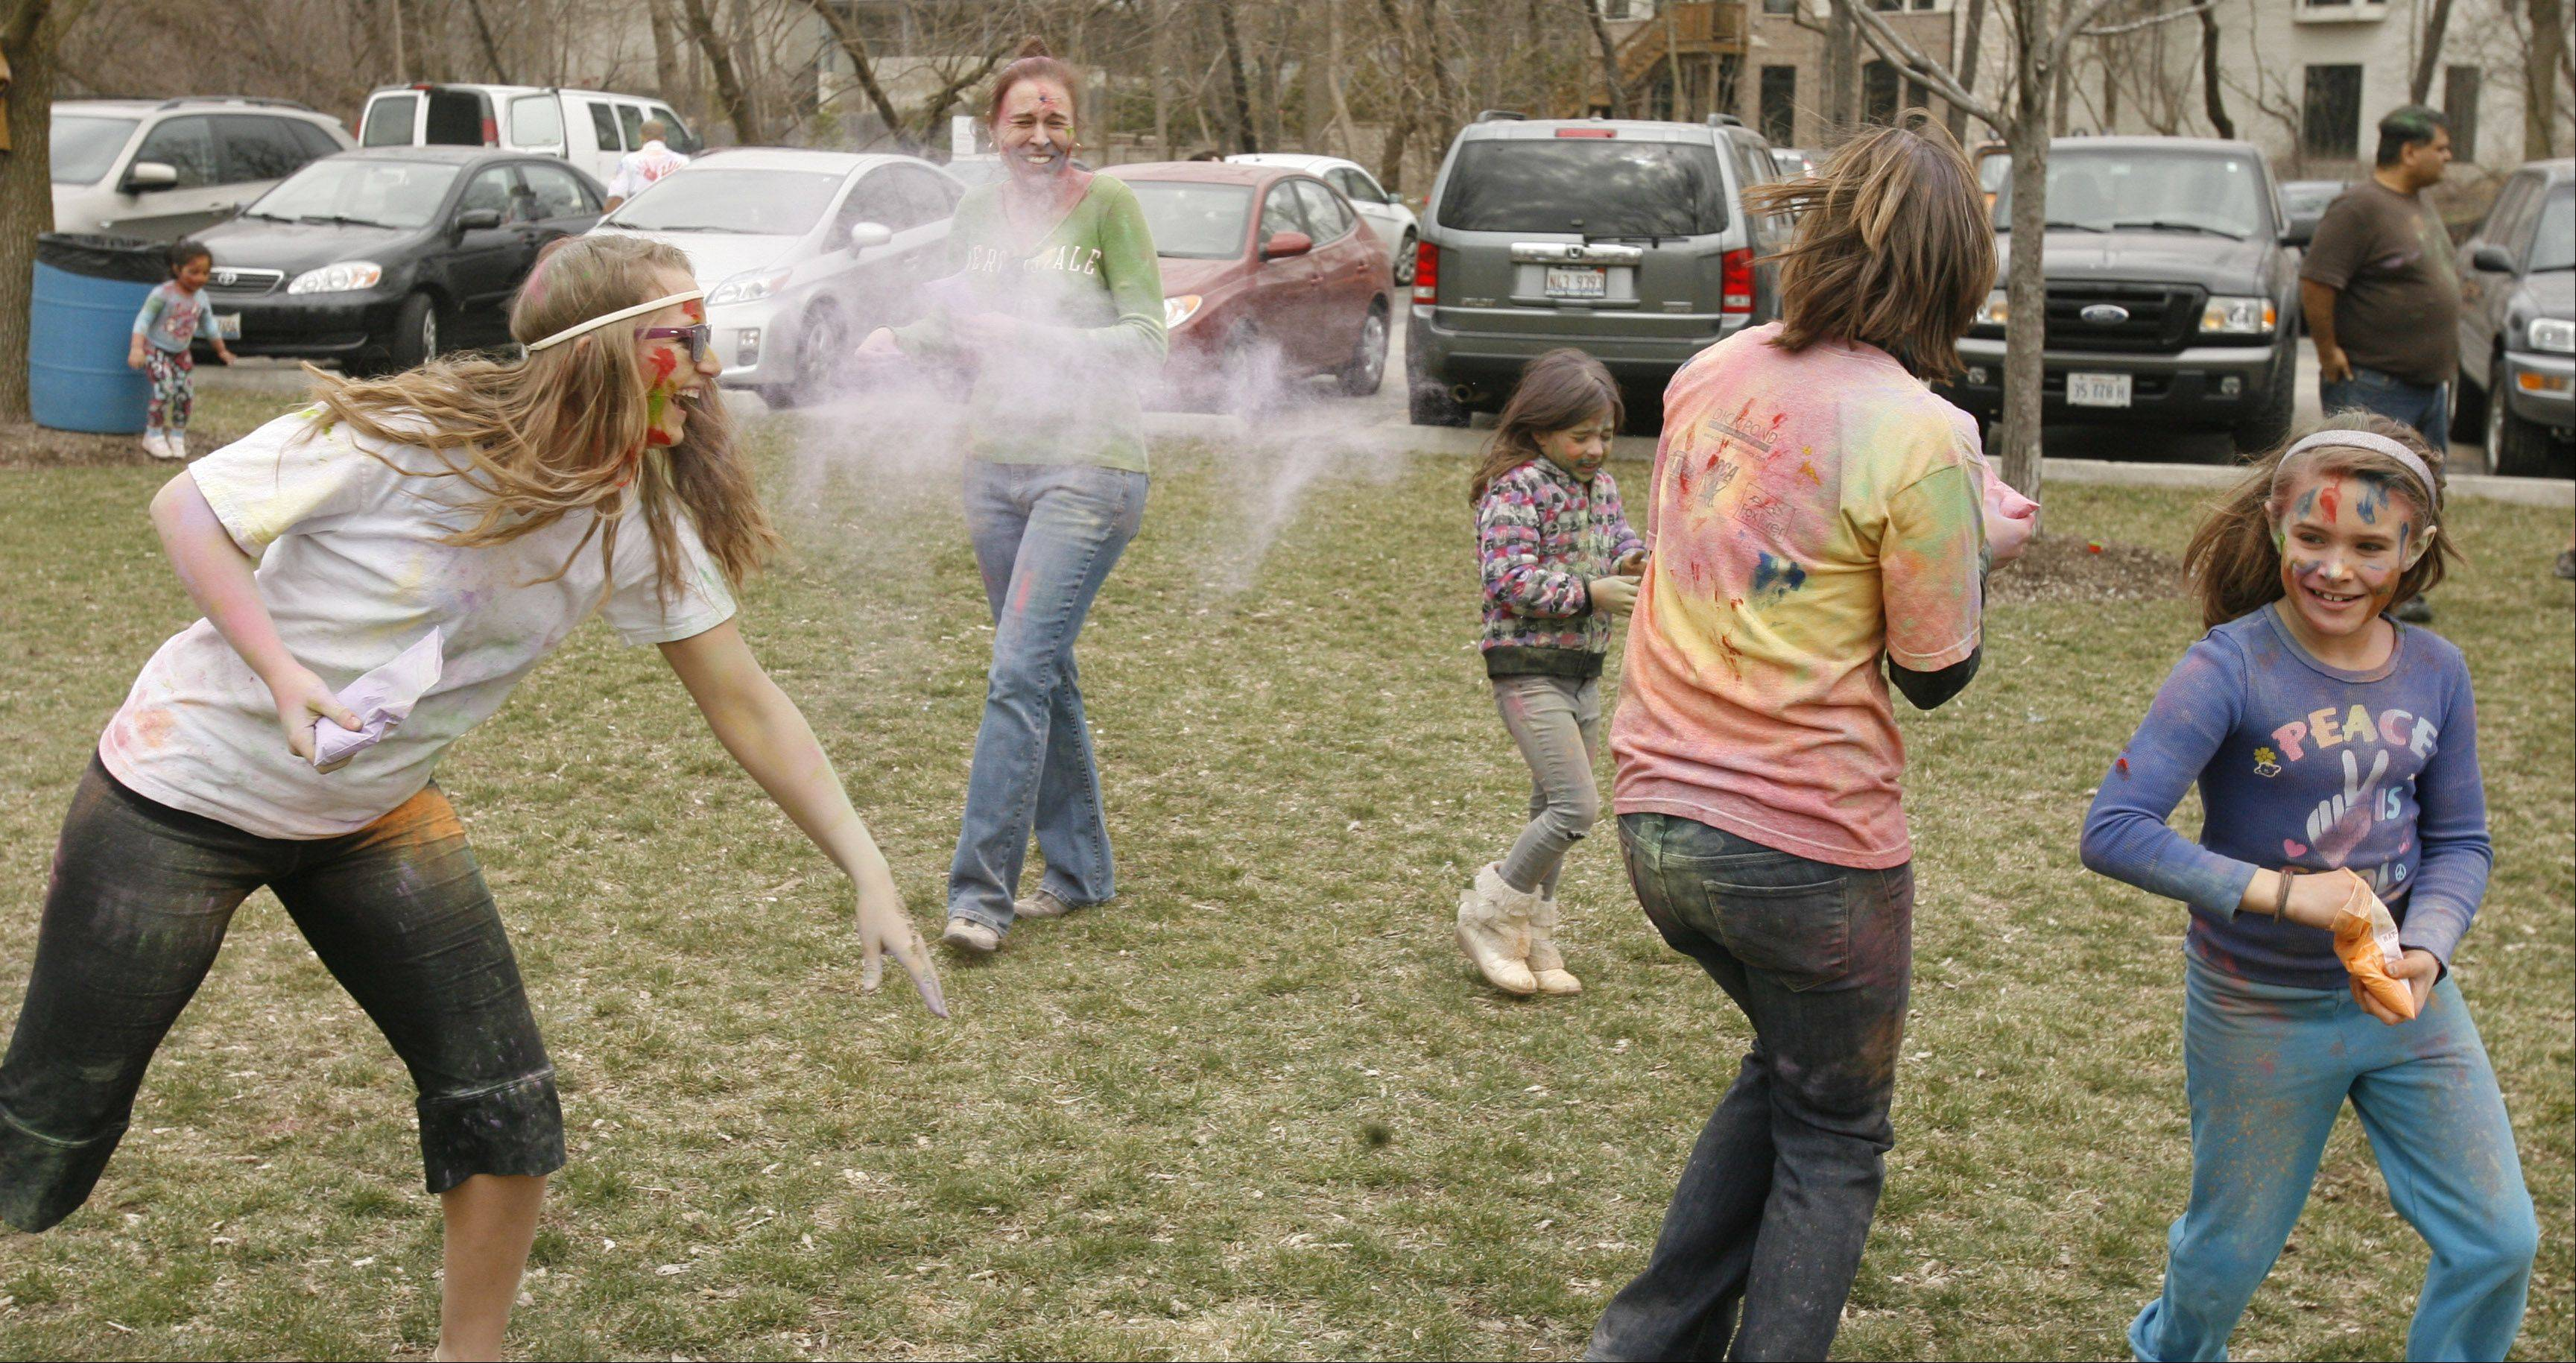 Olivet Nazarene University theology major Sydney Hunt of Normal awaits a cloud of color Saturday during the Simply Vedic Cultural Society's Festival of Colors in Naperville. The event celebrated the Hindu festival Holi, which marks the coming of spring and encourages participants to throw their worries to the wind.